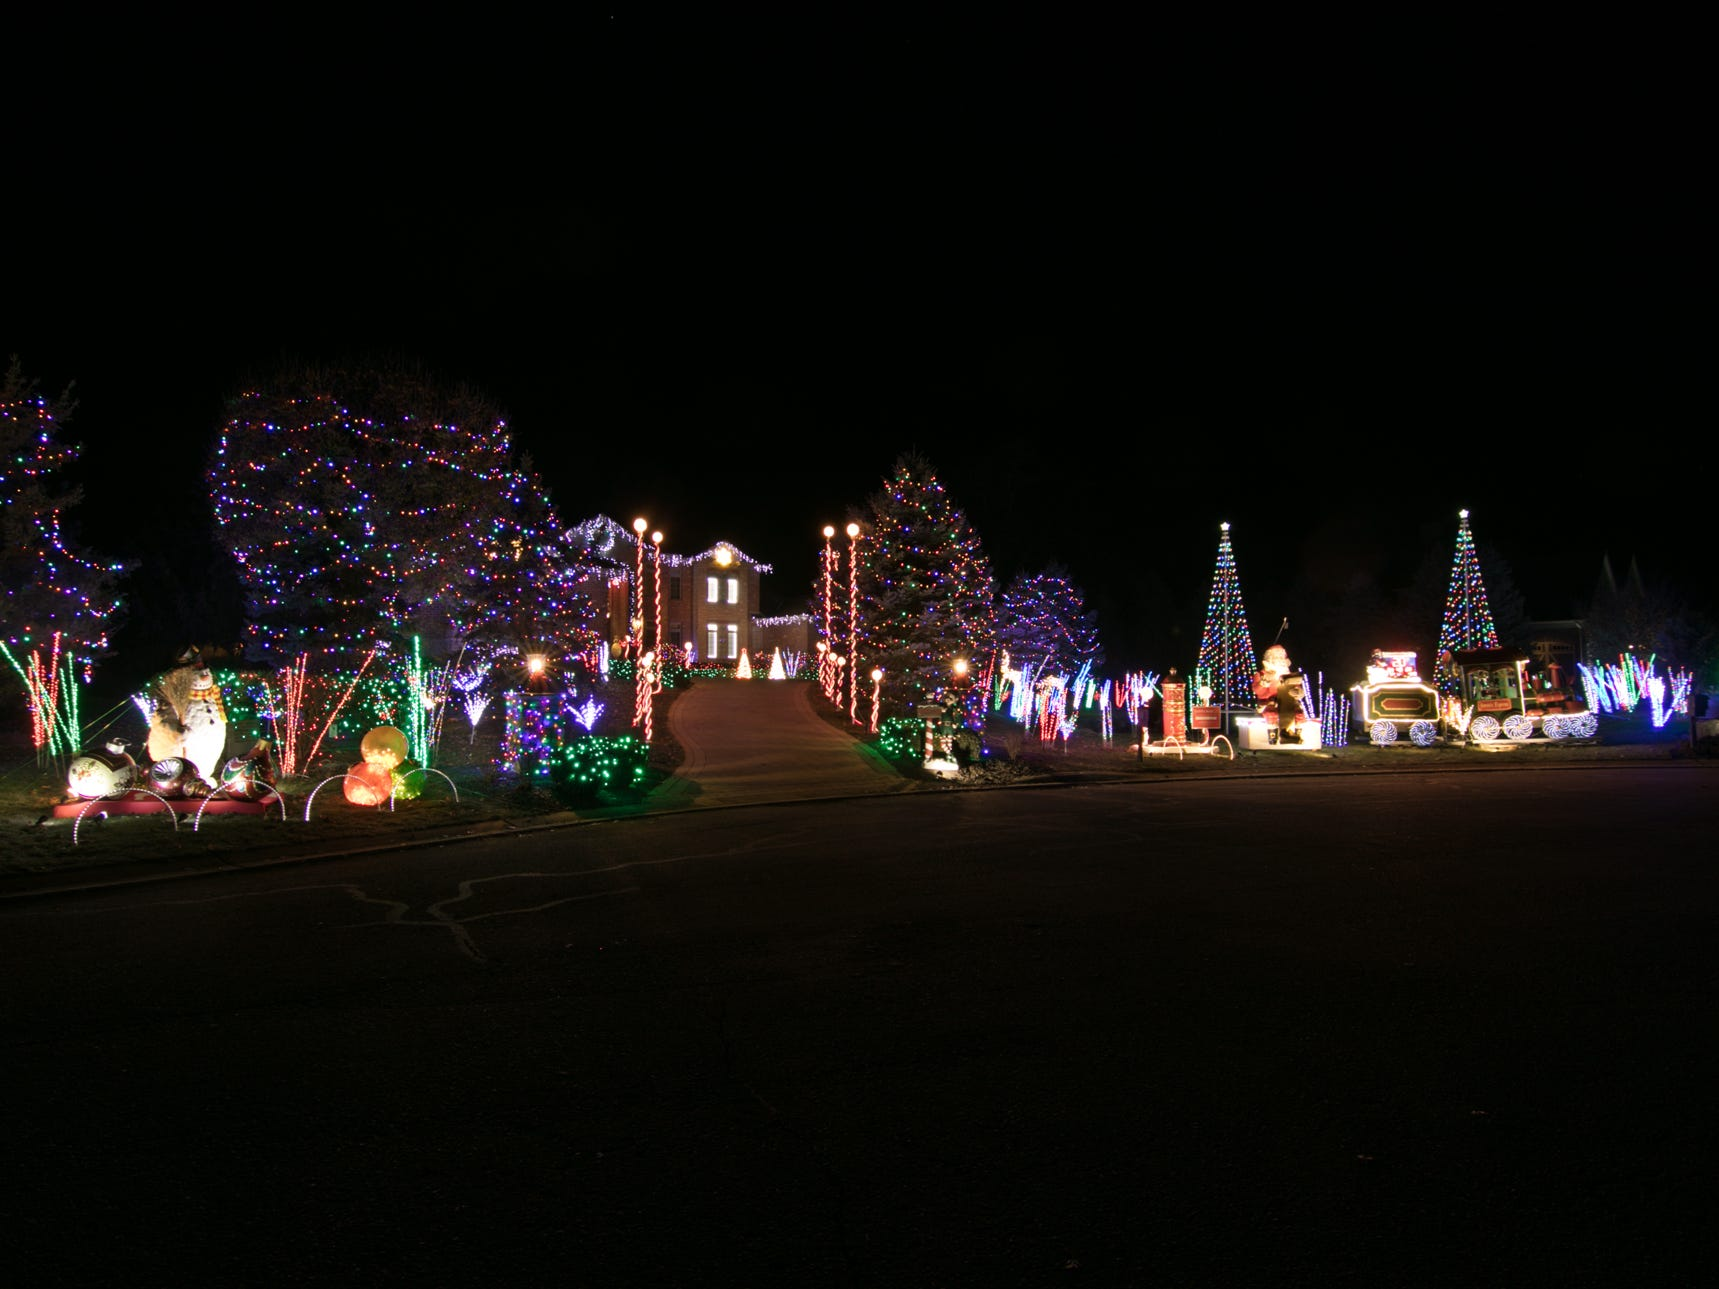 3382 Hilton Pointe, Brighton Twp., the home of Ron Borgman, shown Tuesday, Dec. 4, 2018. The gates to the subdivision are open from 6:30-9:30 p.m. during the holidays for viewing the lights. Vote on your favorite home by emailing gbenedict@livingstondaily.com by midnight of Jan. 2, 2019.